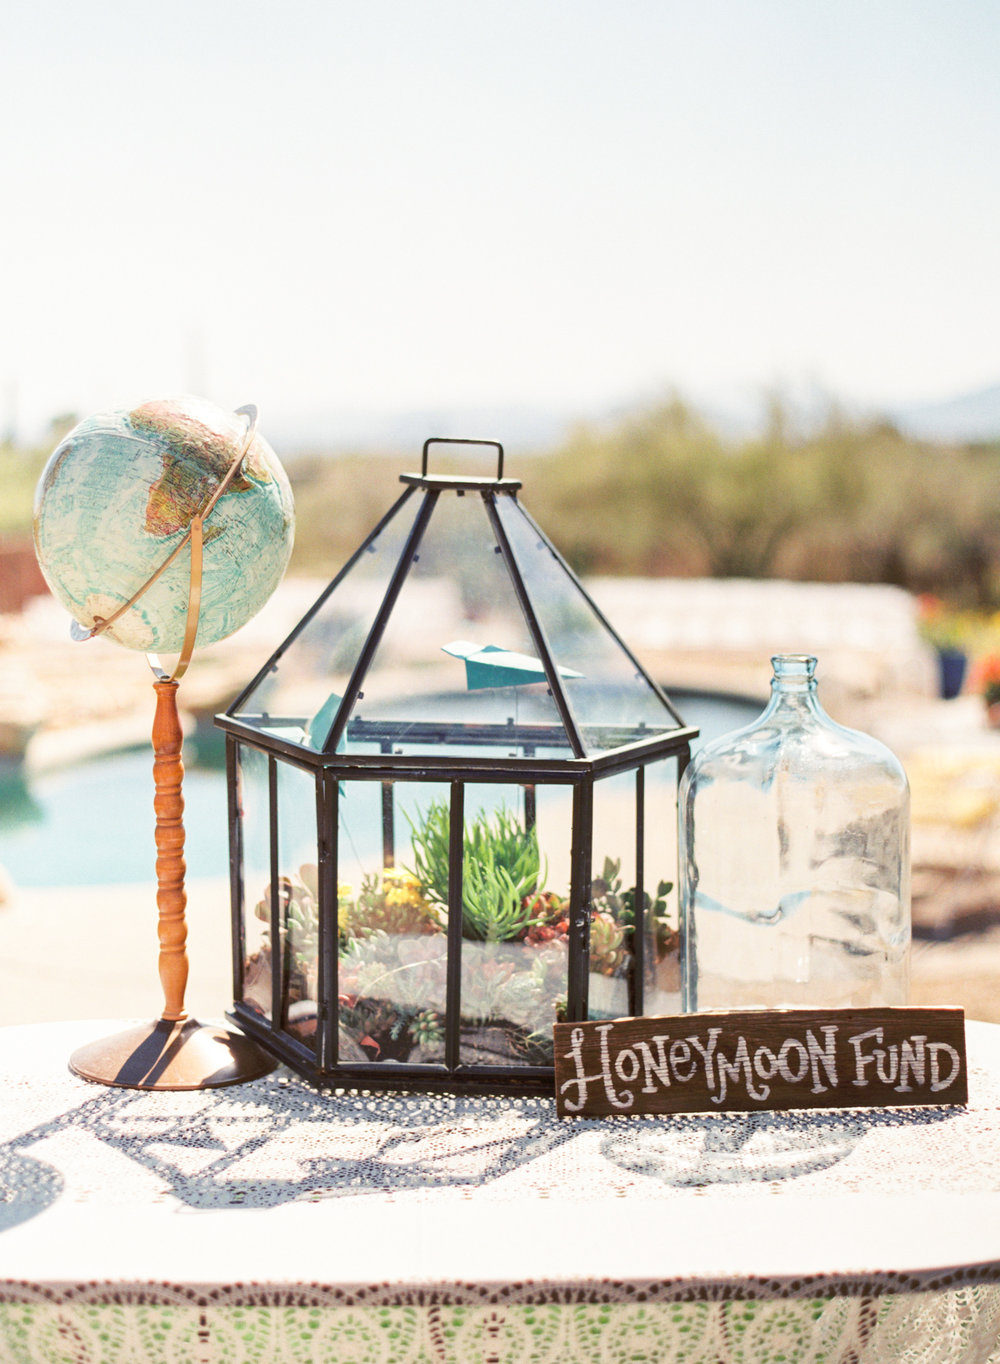 Honeymoon fun jar